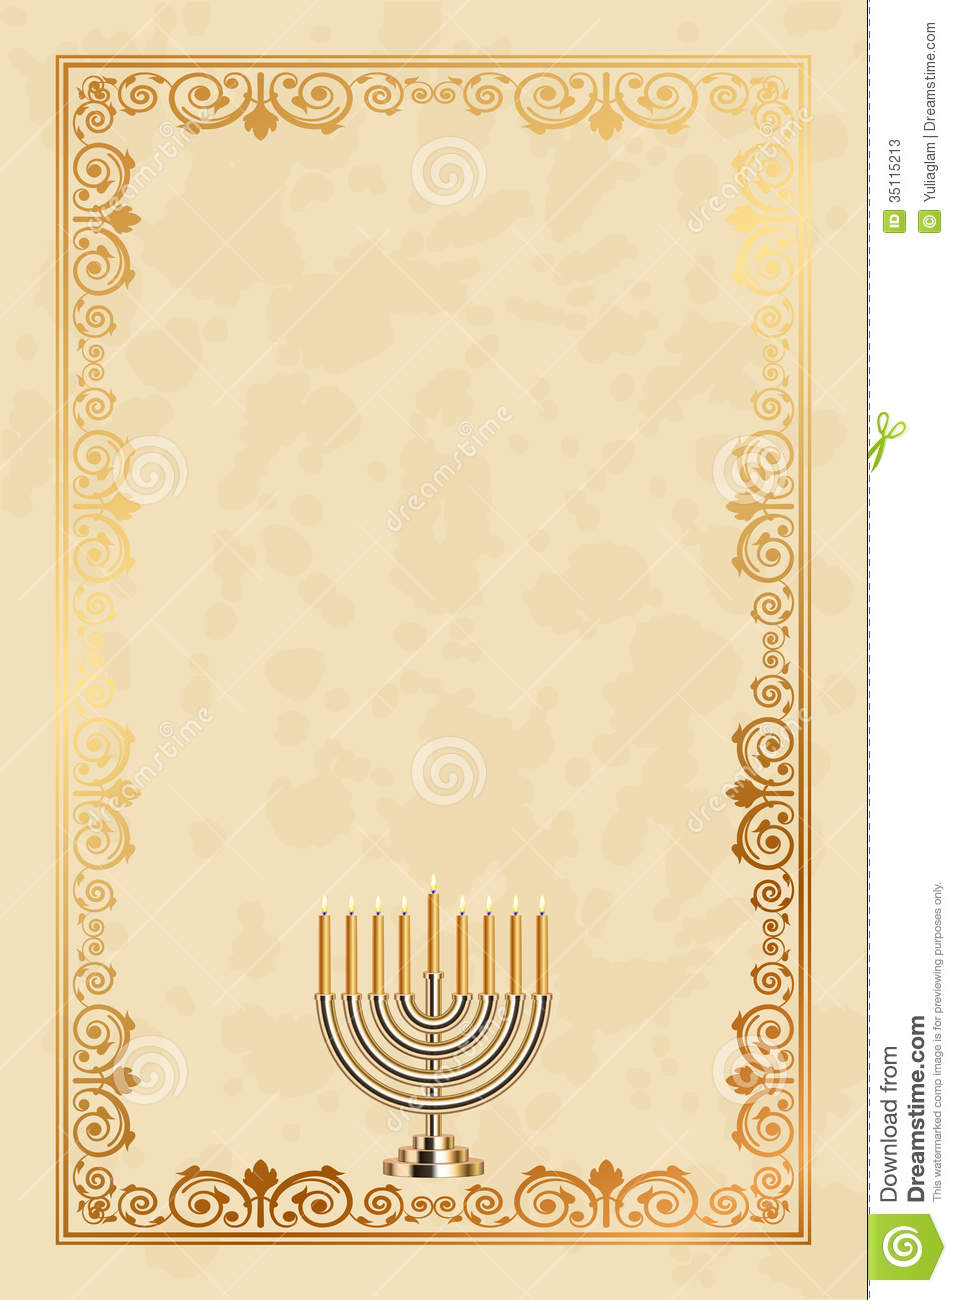 Dreidel Border Stock Photos - Image: 1591873